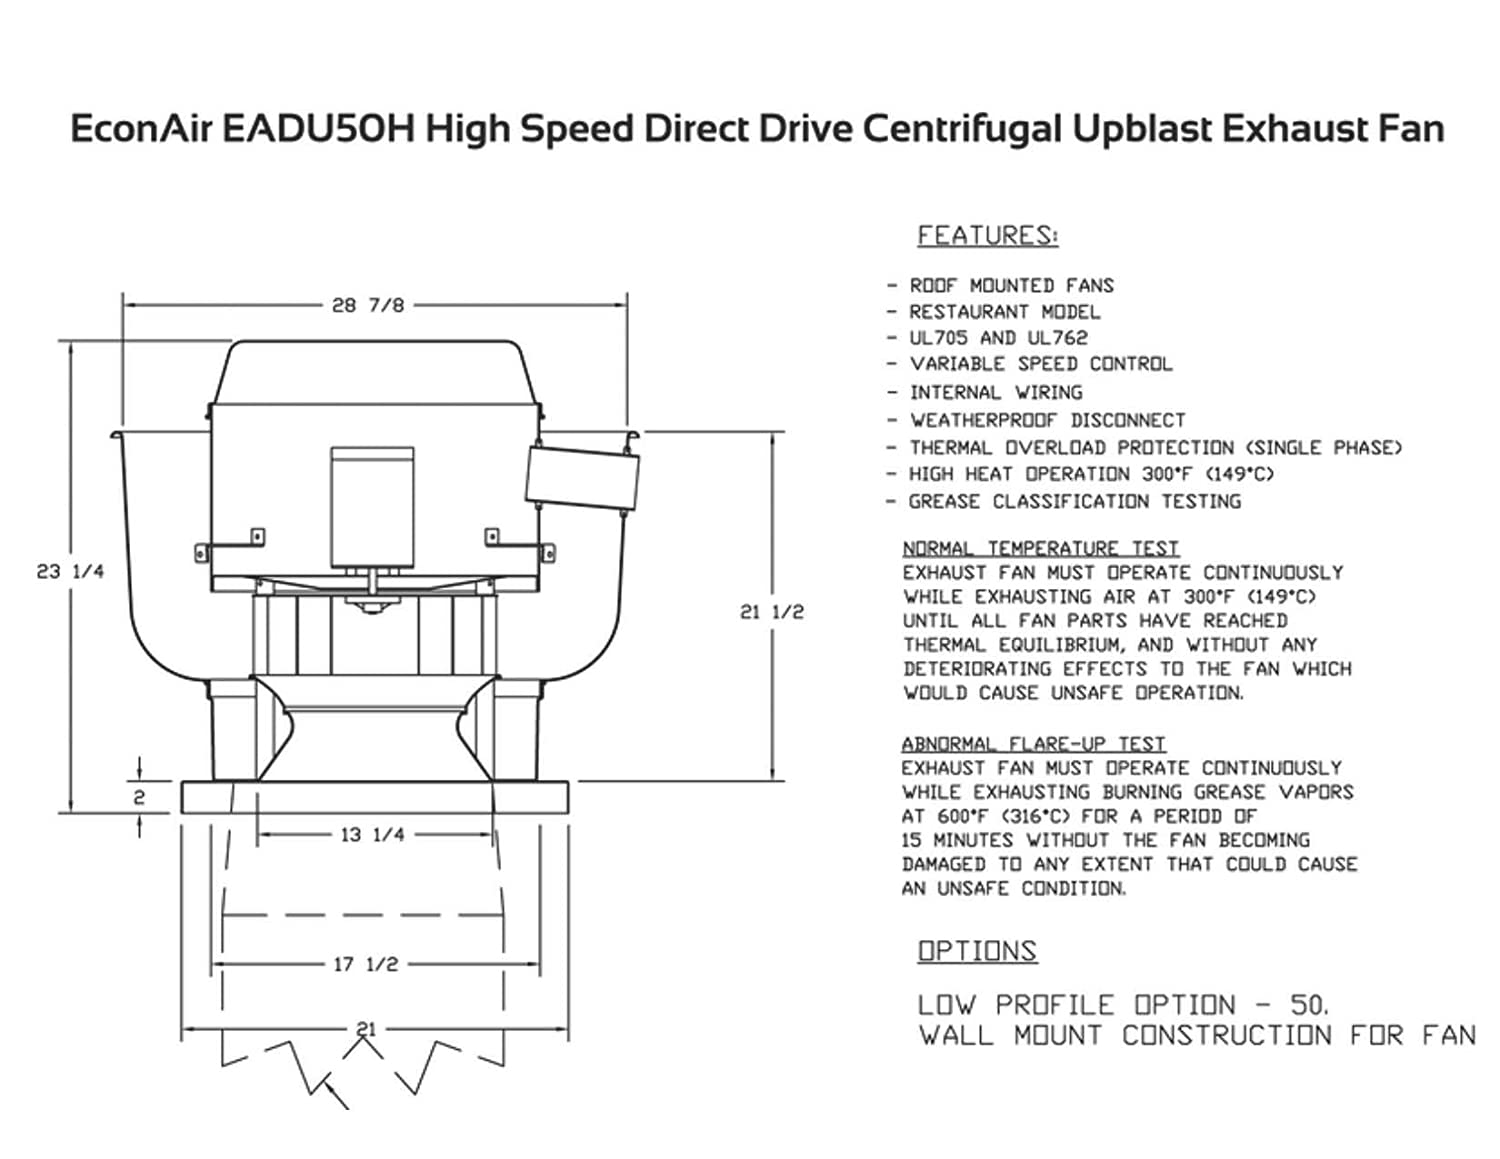 1400 Cfm Direct Drive Upblast Restaurant Exhaust Fan With 1375 Centrifugal Wiring Diagram Wheel Motor 5 Hp 115 V Single Phase